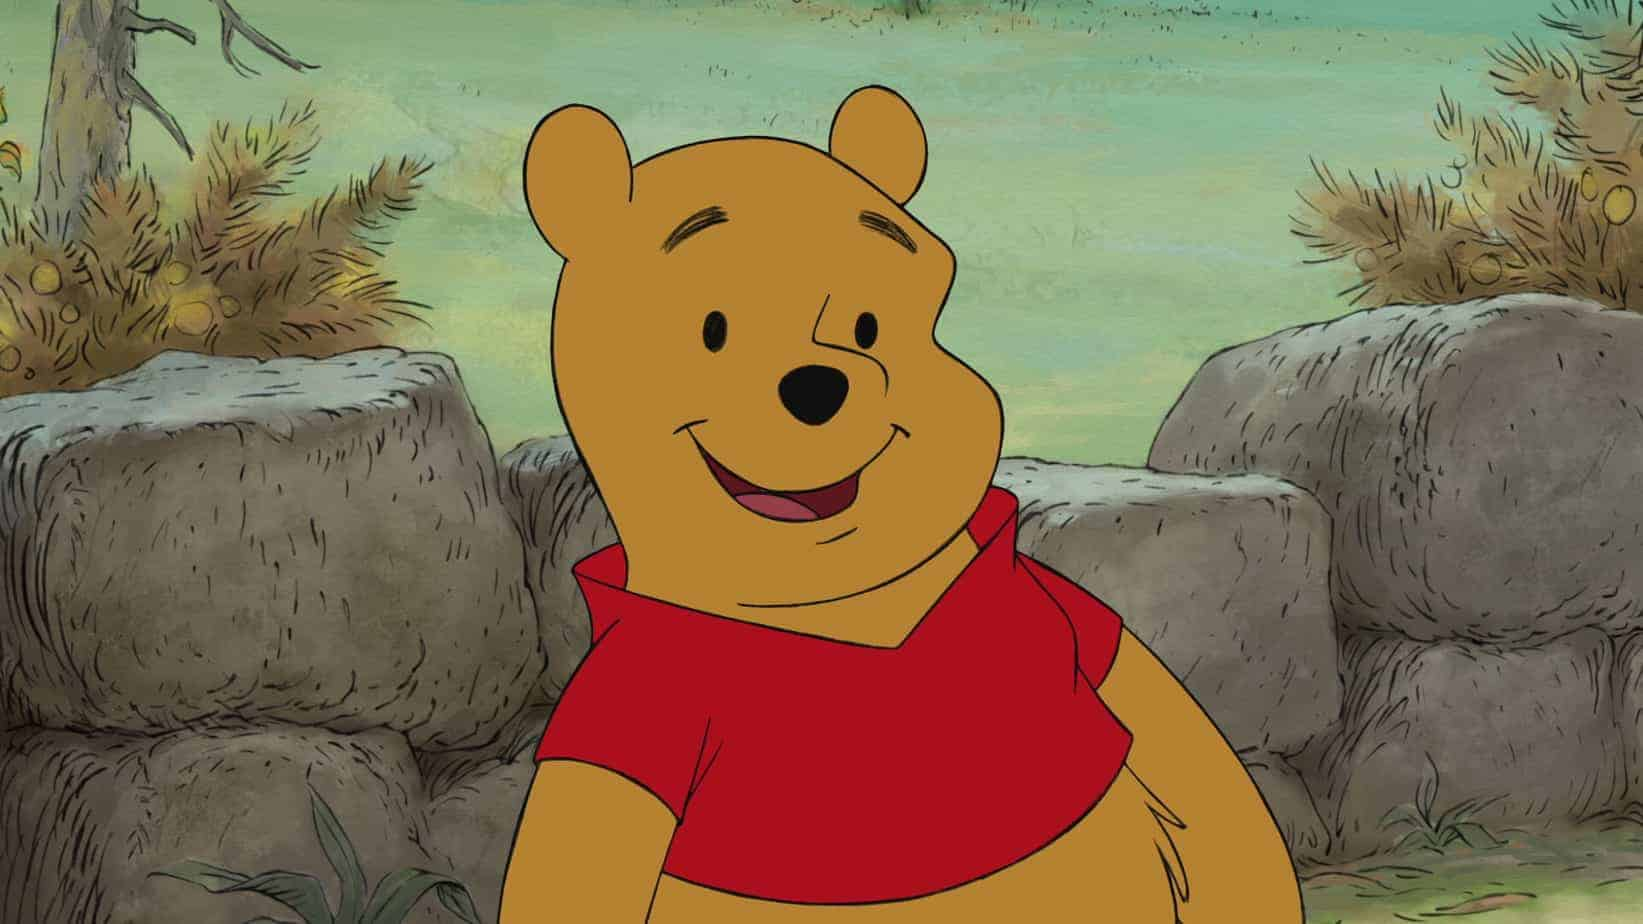 It's just an image of Remarkable Pics of Winne the Pooh